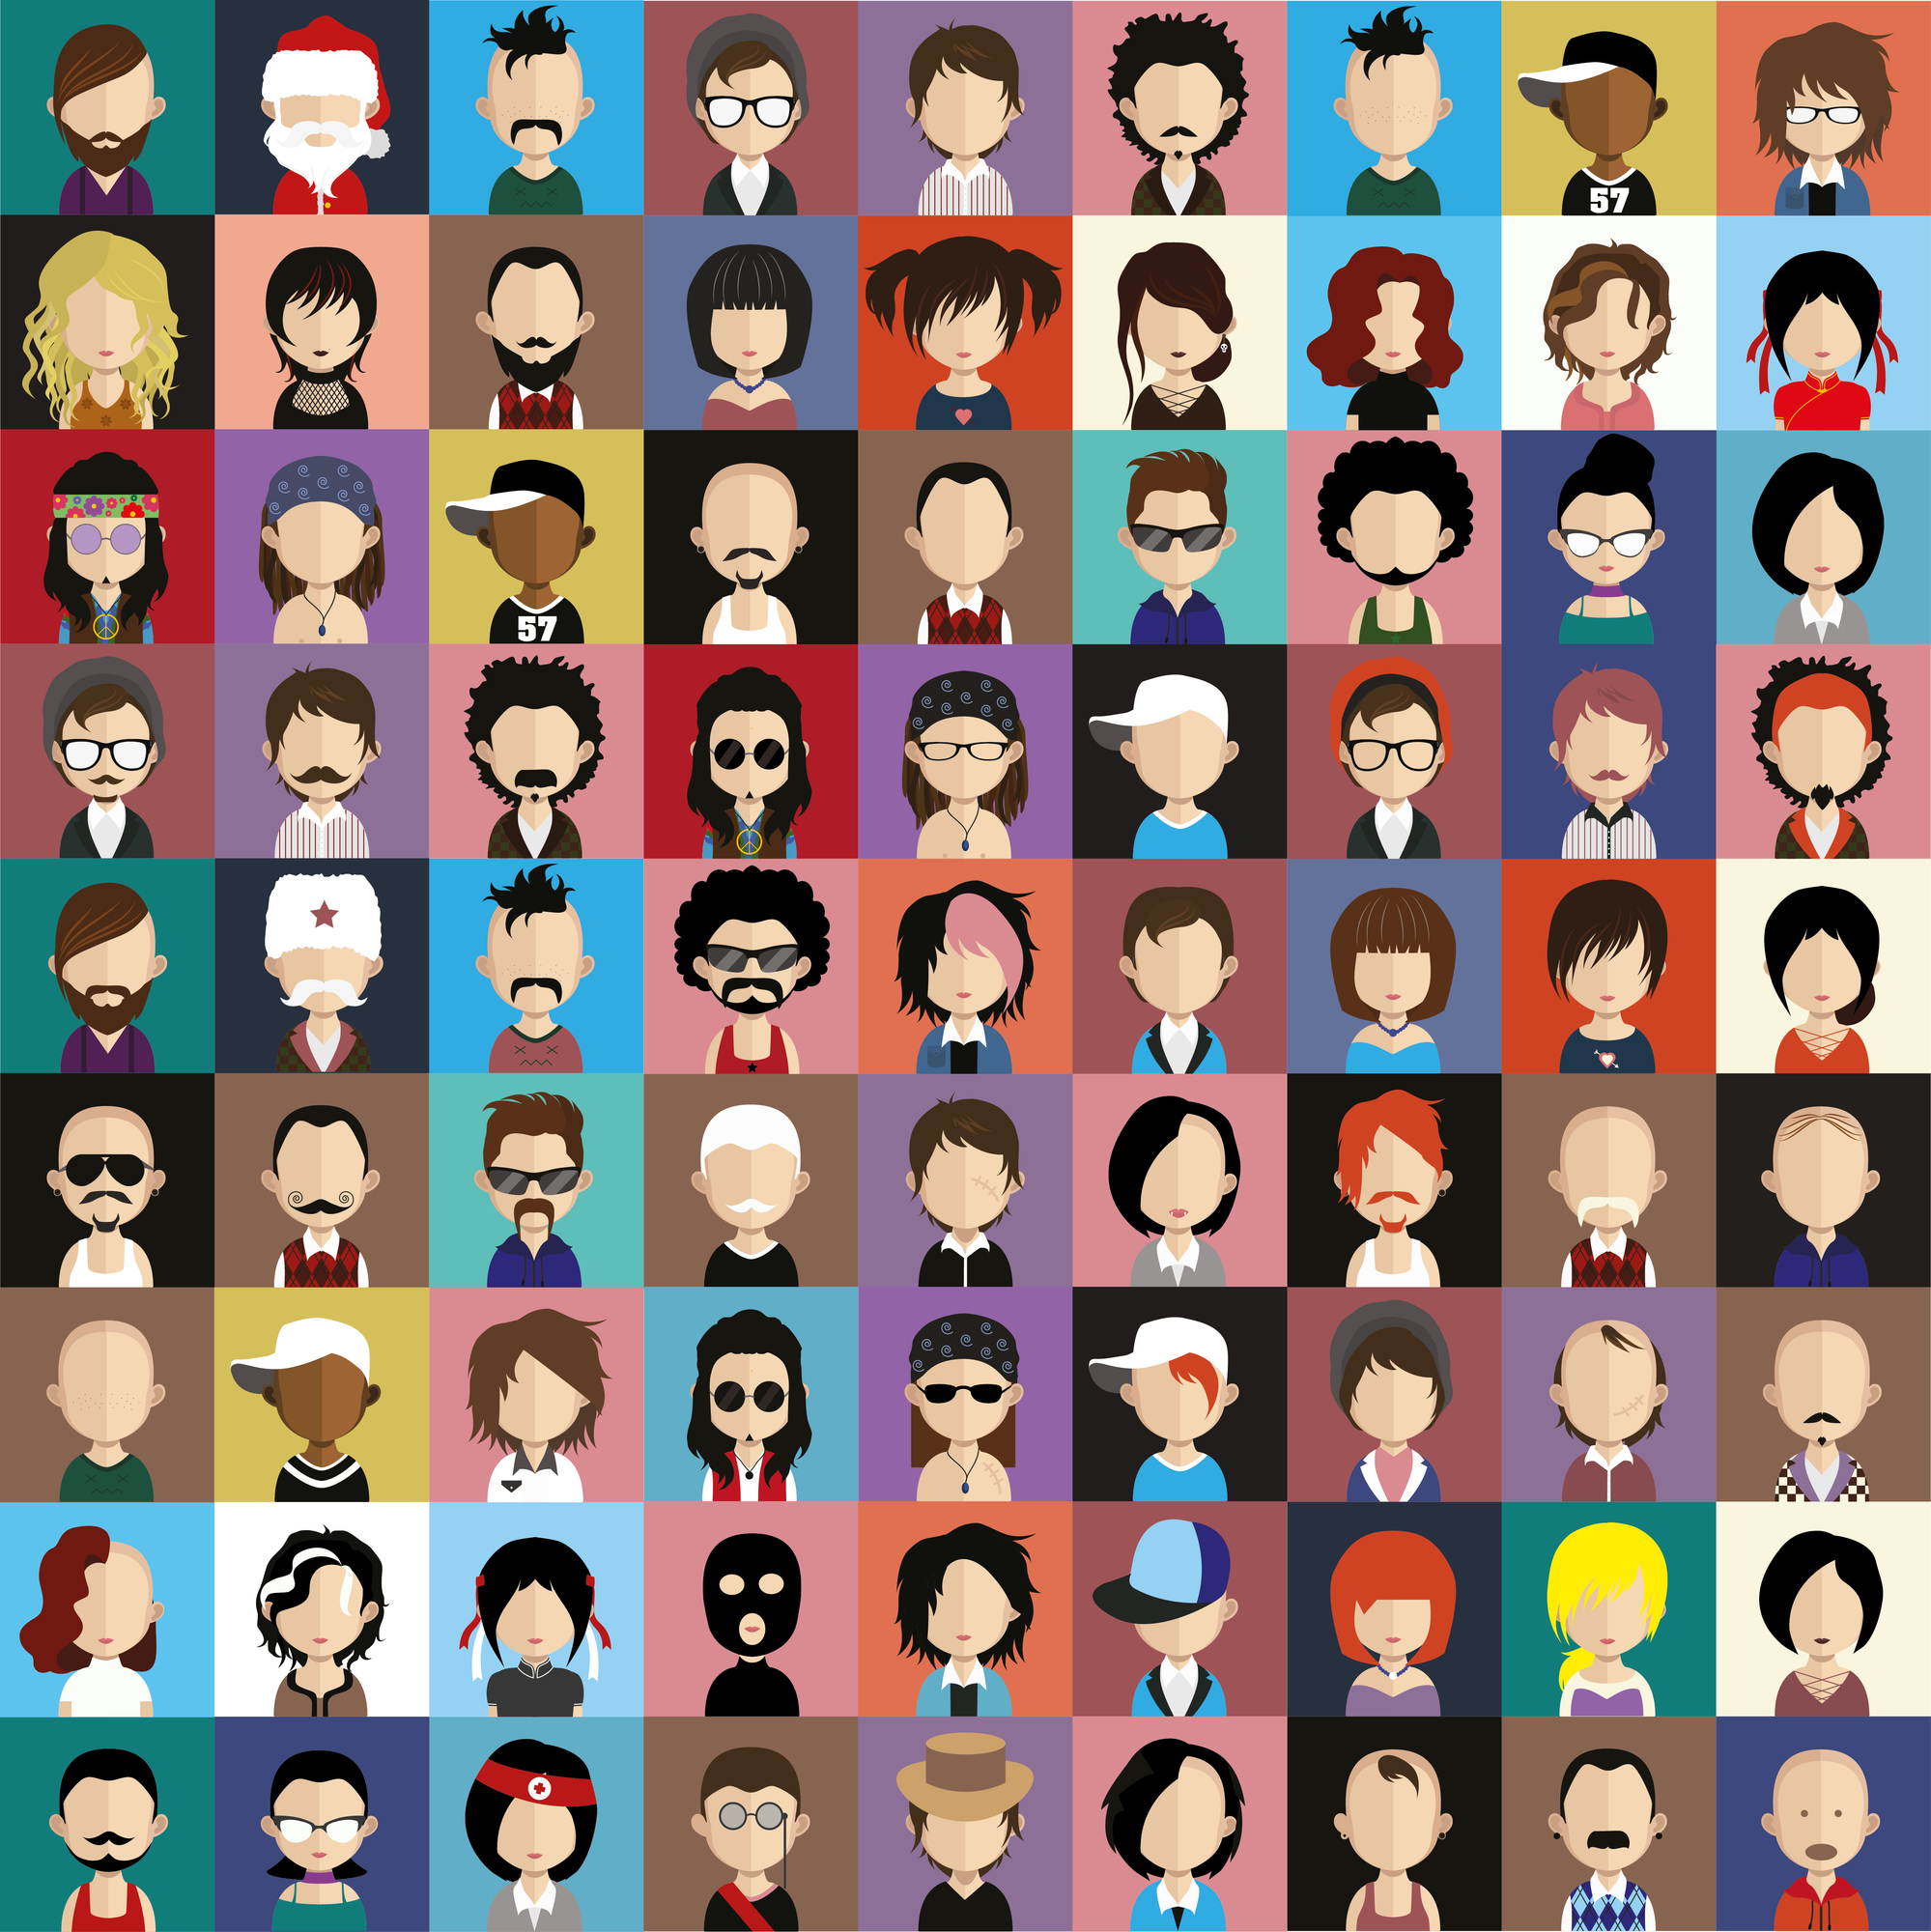 face icons and avatars